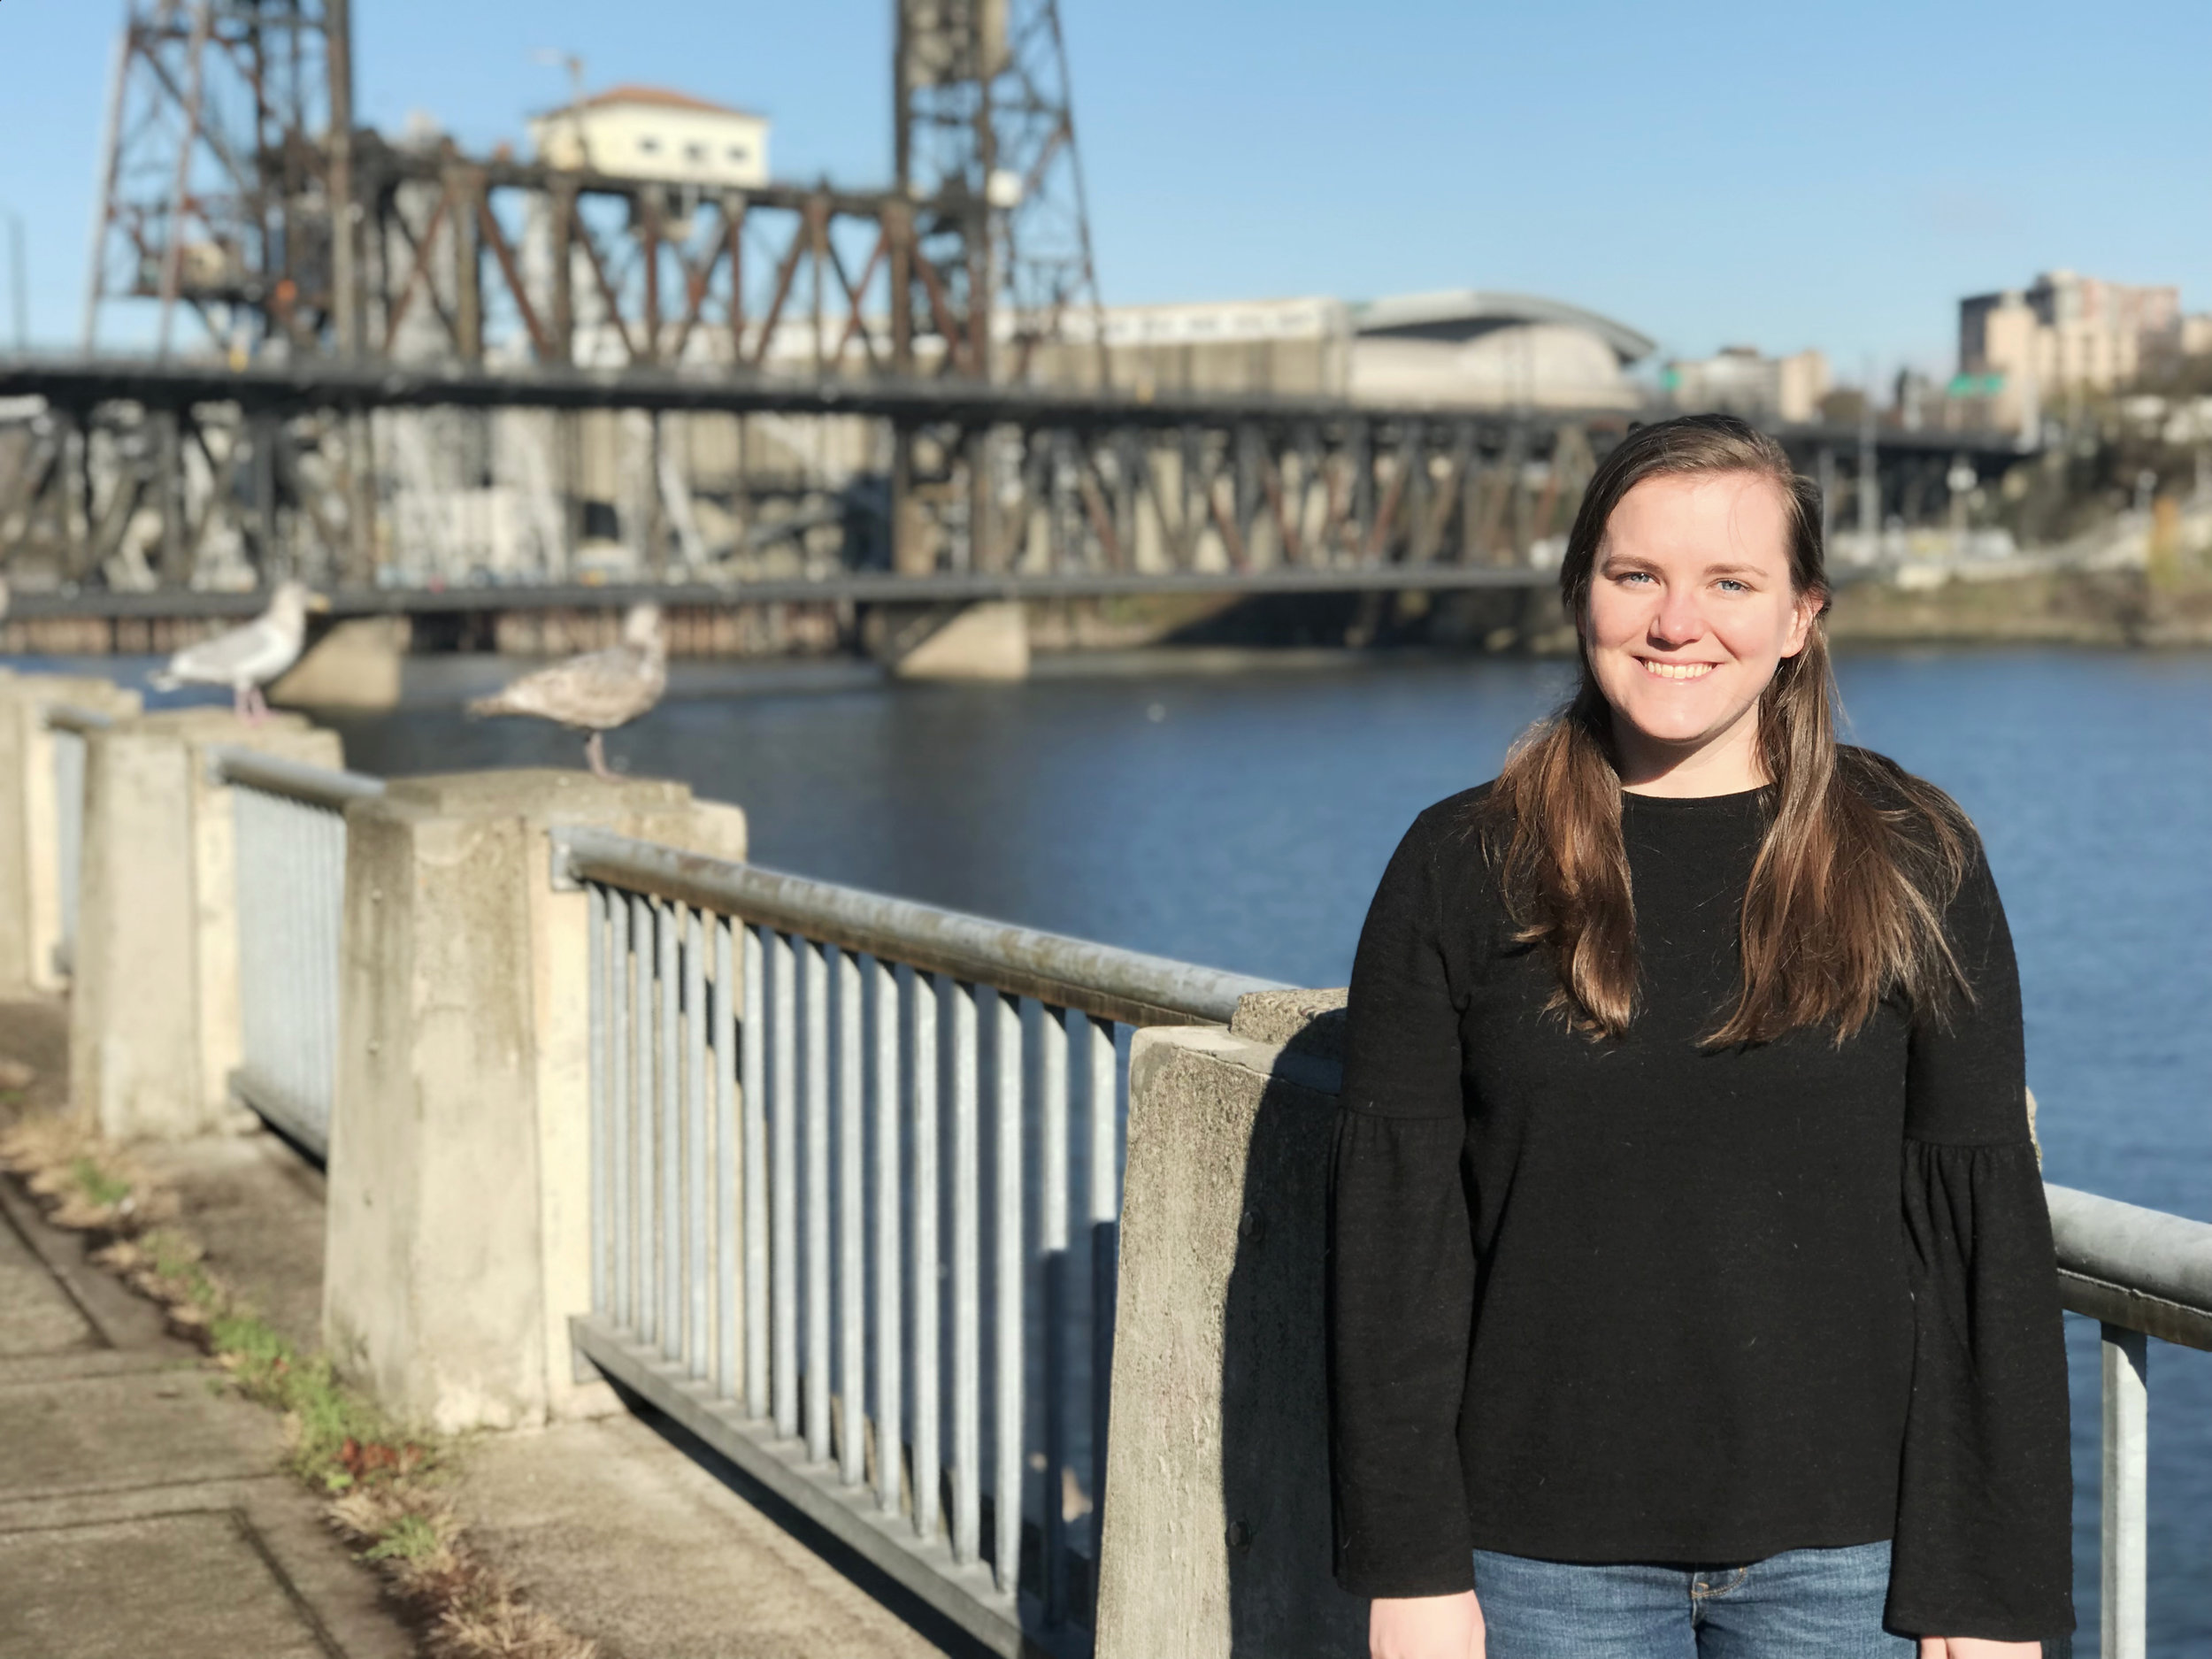 Katie Schneider stands in front of the willamette river and the steel Bridge in portland